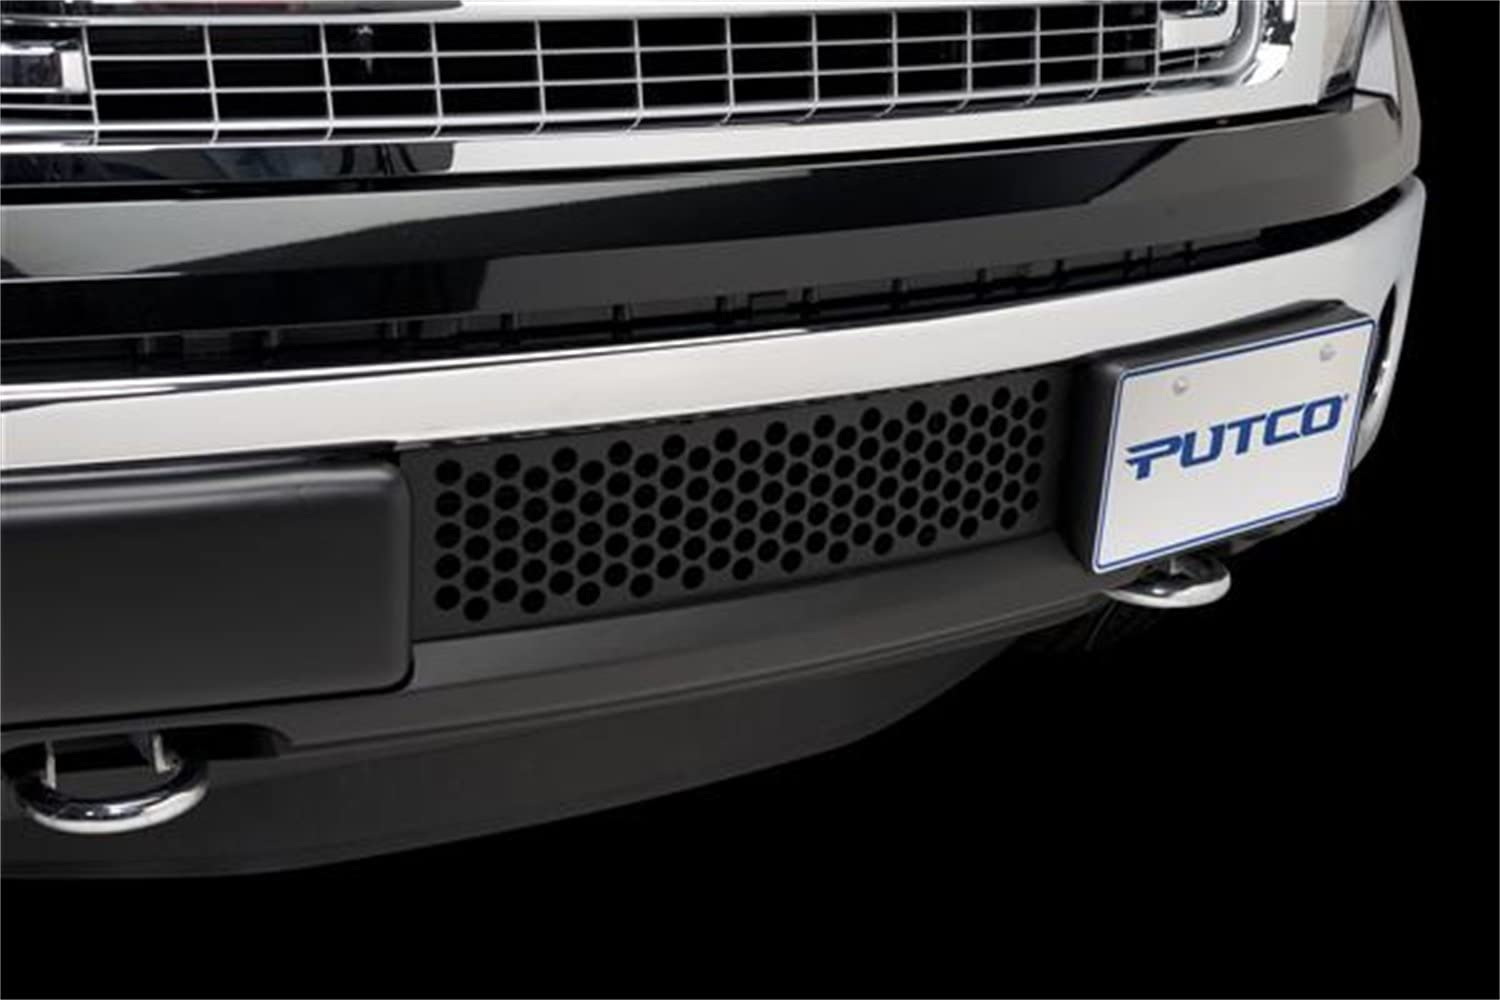 Putco 88182 Punch Stainless Steel Black Grille Insert for Ford EcoBoost